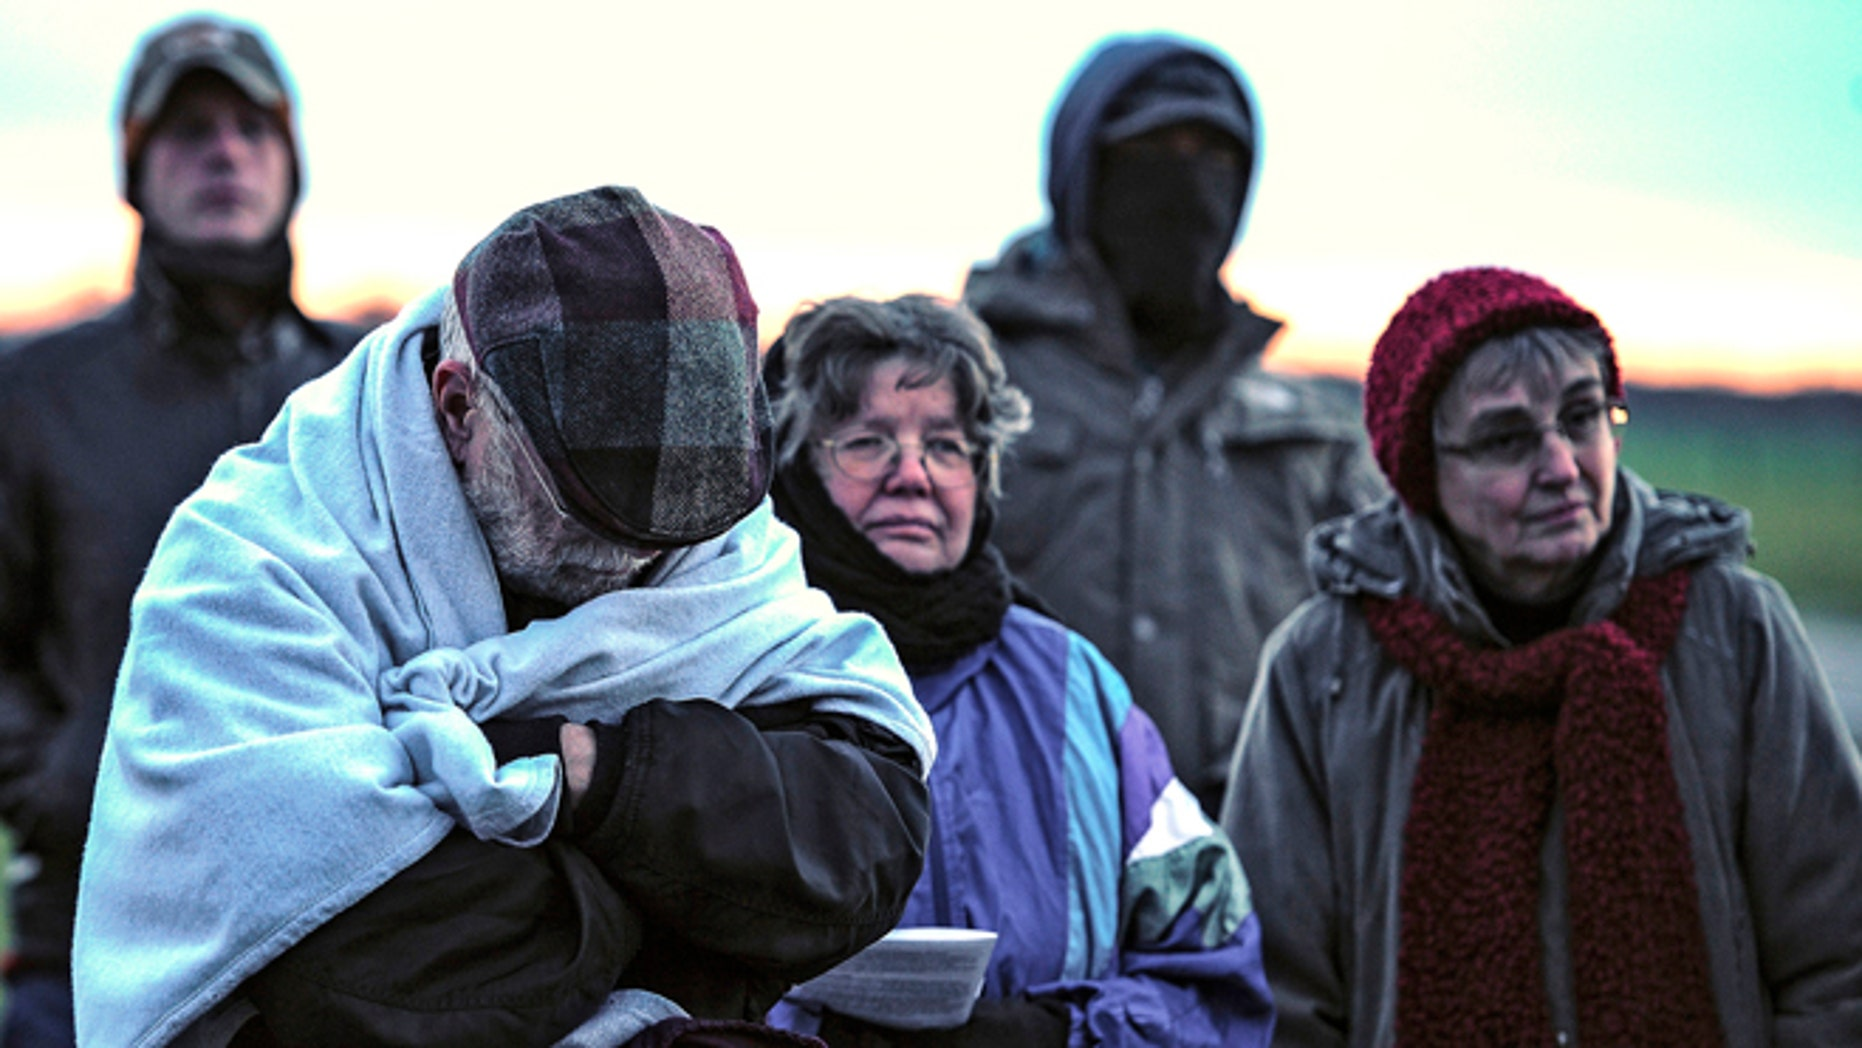 FILE: Jan. 7, 2014: A family from Daytona, Ohio protest against the death penalty in front of the Florida State Prison near Starke, Fla.